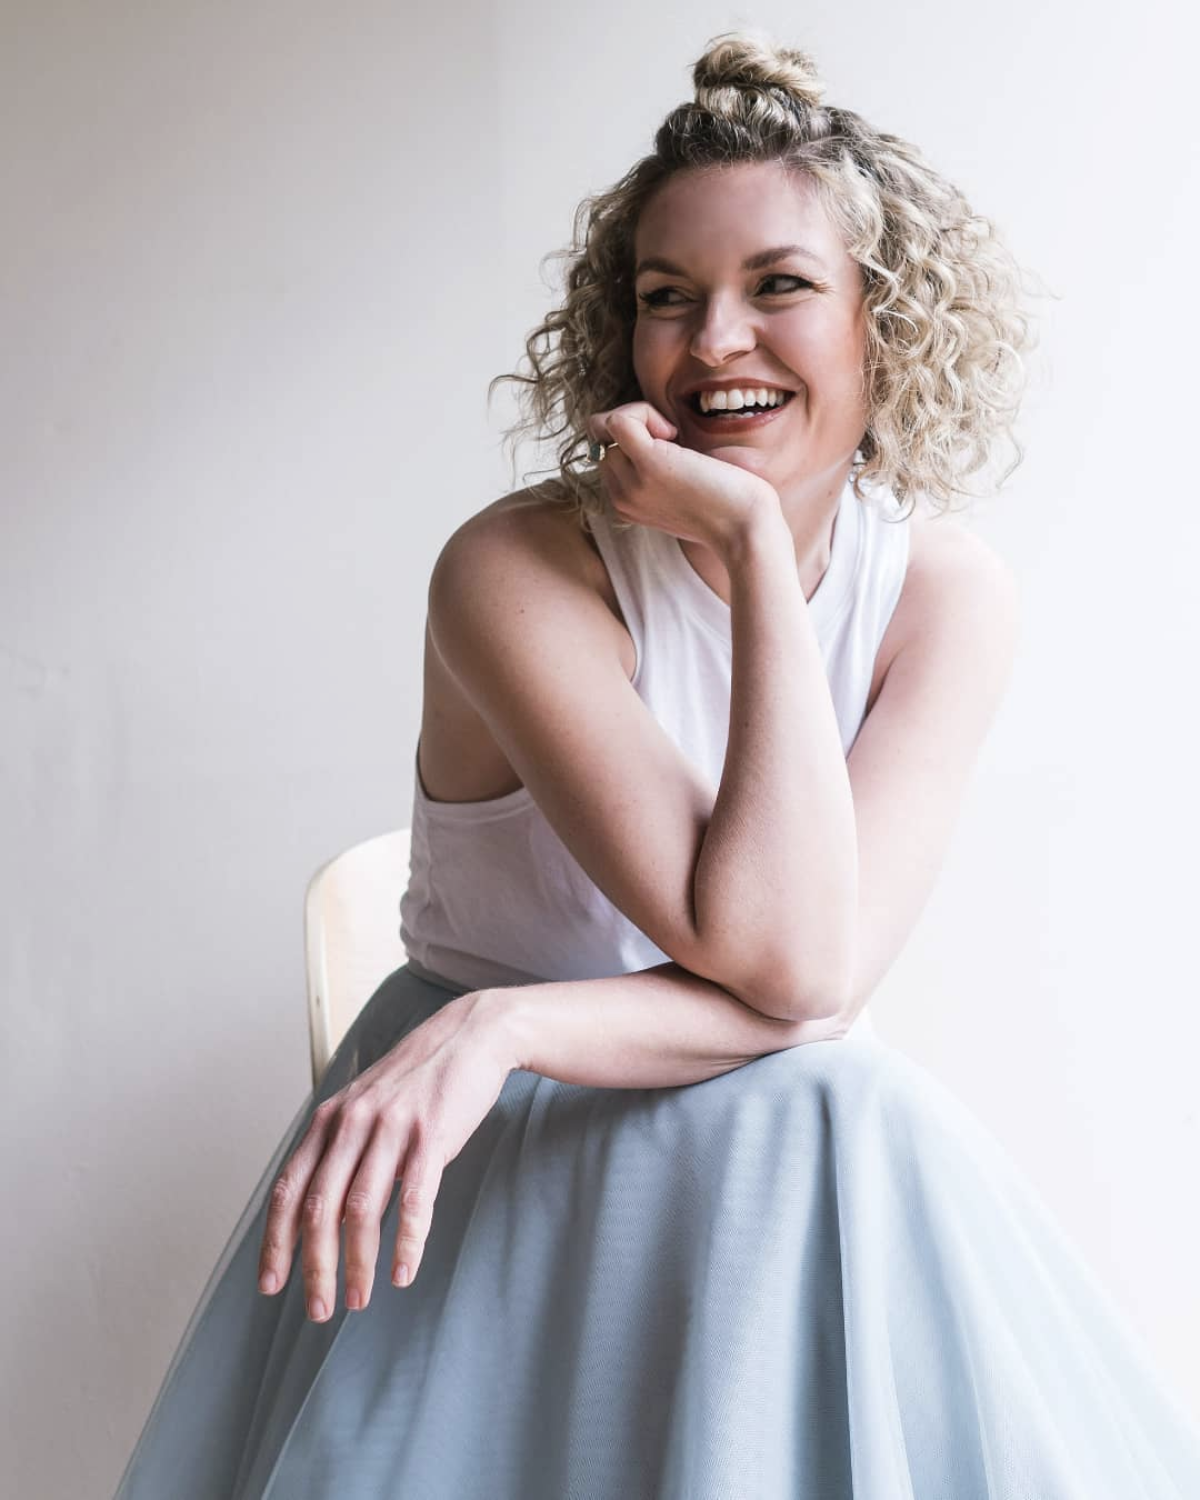 Rebecca, the designer and mastermind behind Rebecca Schoneveld Bridal is a resourceful, creative and inspired bridal designer.